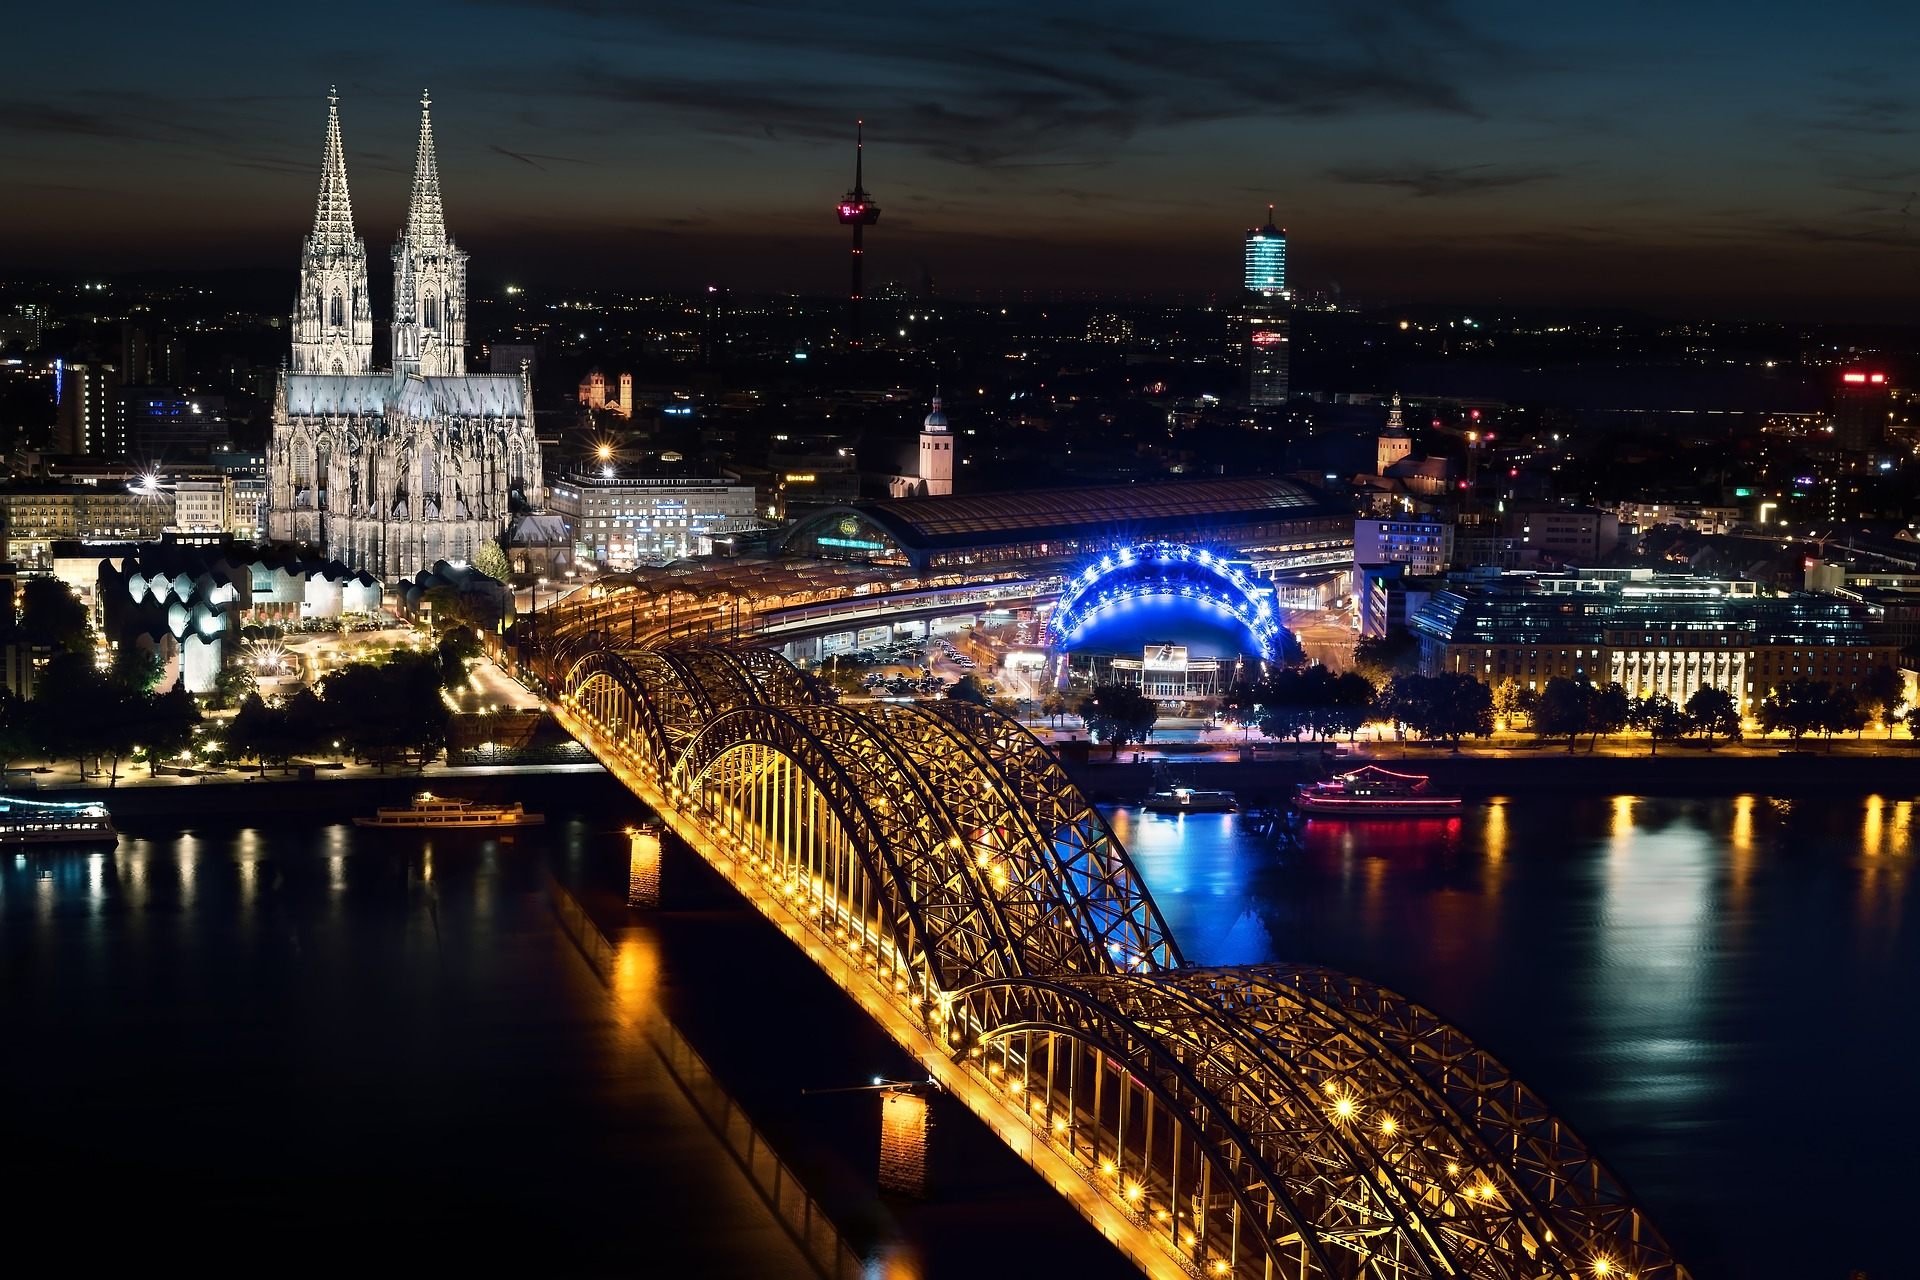 Picture of the Cologne, Germany skyline at night featuring the Cologne Cathedral and the Hohenzolleran Bridge over the Rhine River.